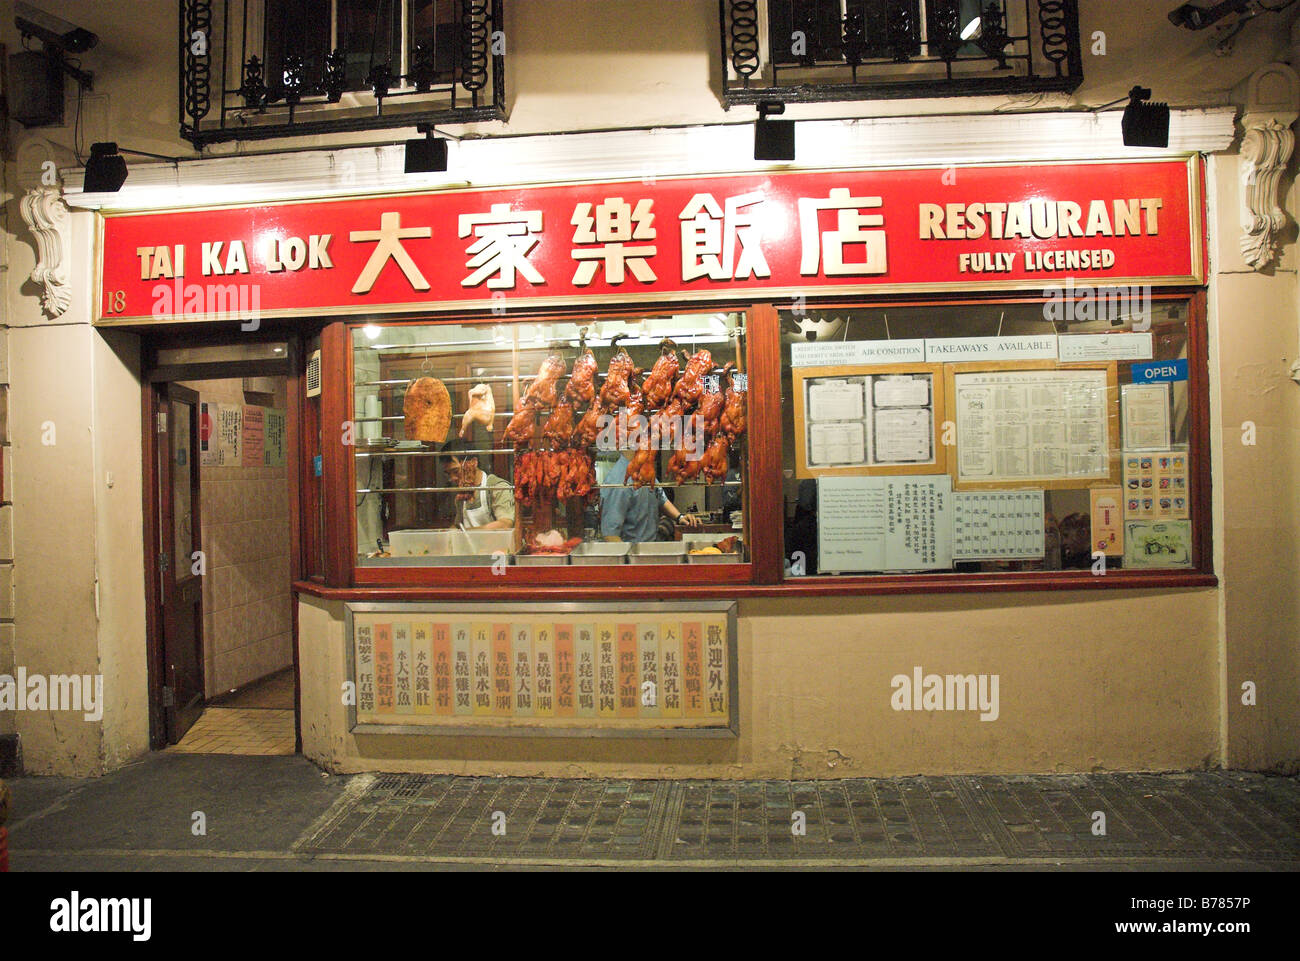 chinese restaurant in gerard street in london 39 s china town developed stock photo royalty free. Black Bedroom Furniture Sets. Home Design Ideas